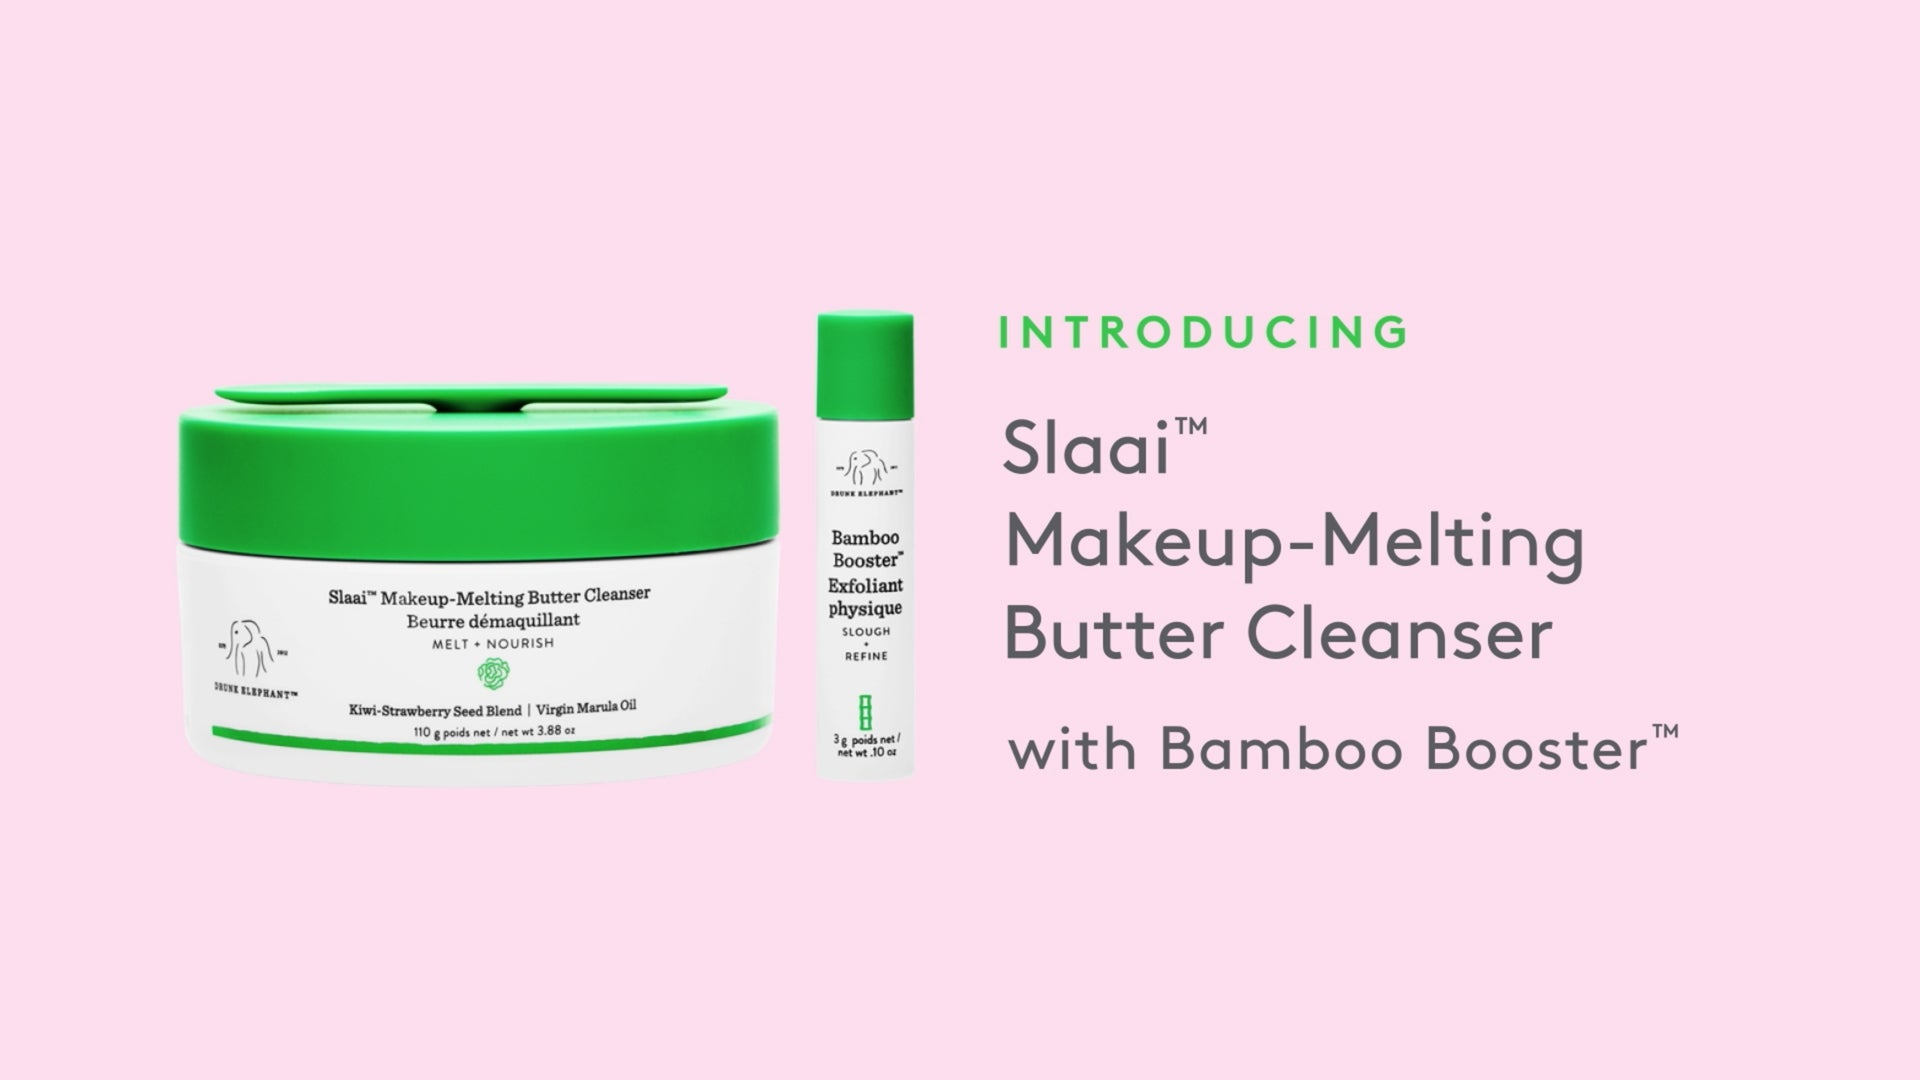 video detailing the benefits of Slaai Makeup Melting Butter Cleanser